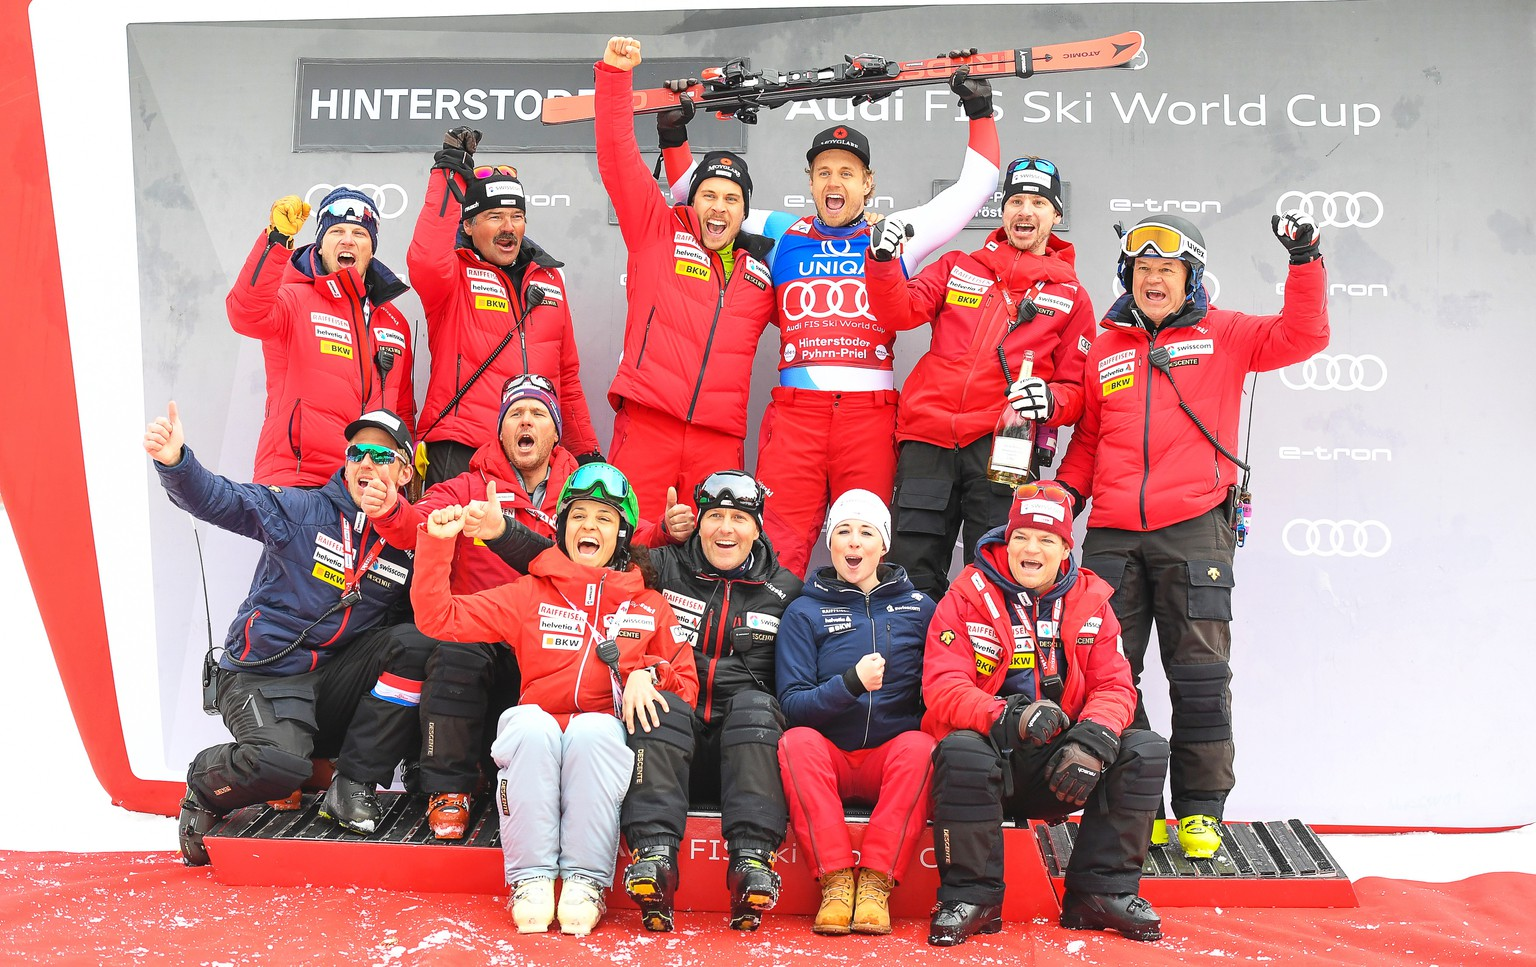 epa08259190 Mauro Caviezel (C) of Switzerland celebrates with team members after taking the second place in the men's Super G race of the FIS Alpine Skiing World Cup in Hinterstoder, Austria, 29 February 2020.  EPA/EXPA/ERICH SPIESS